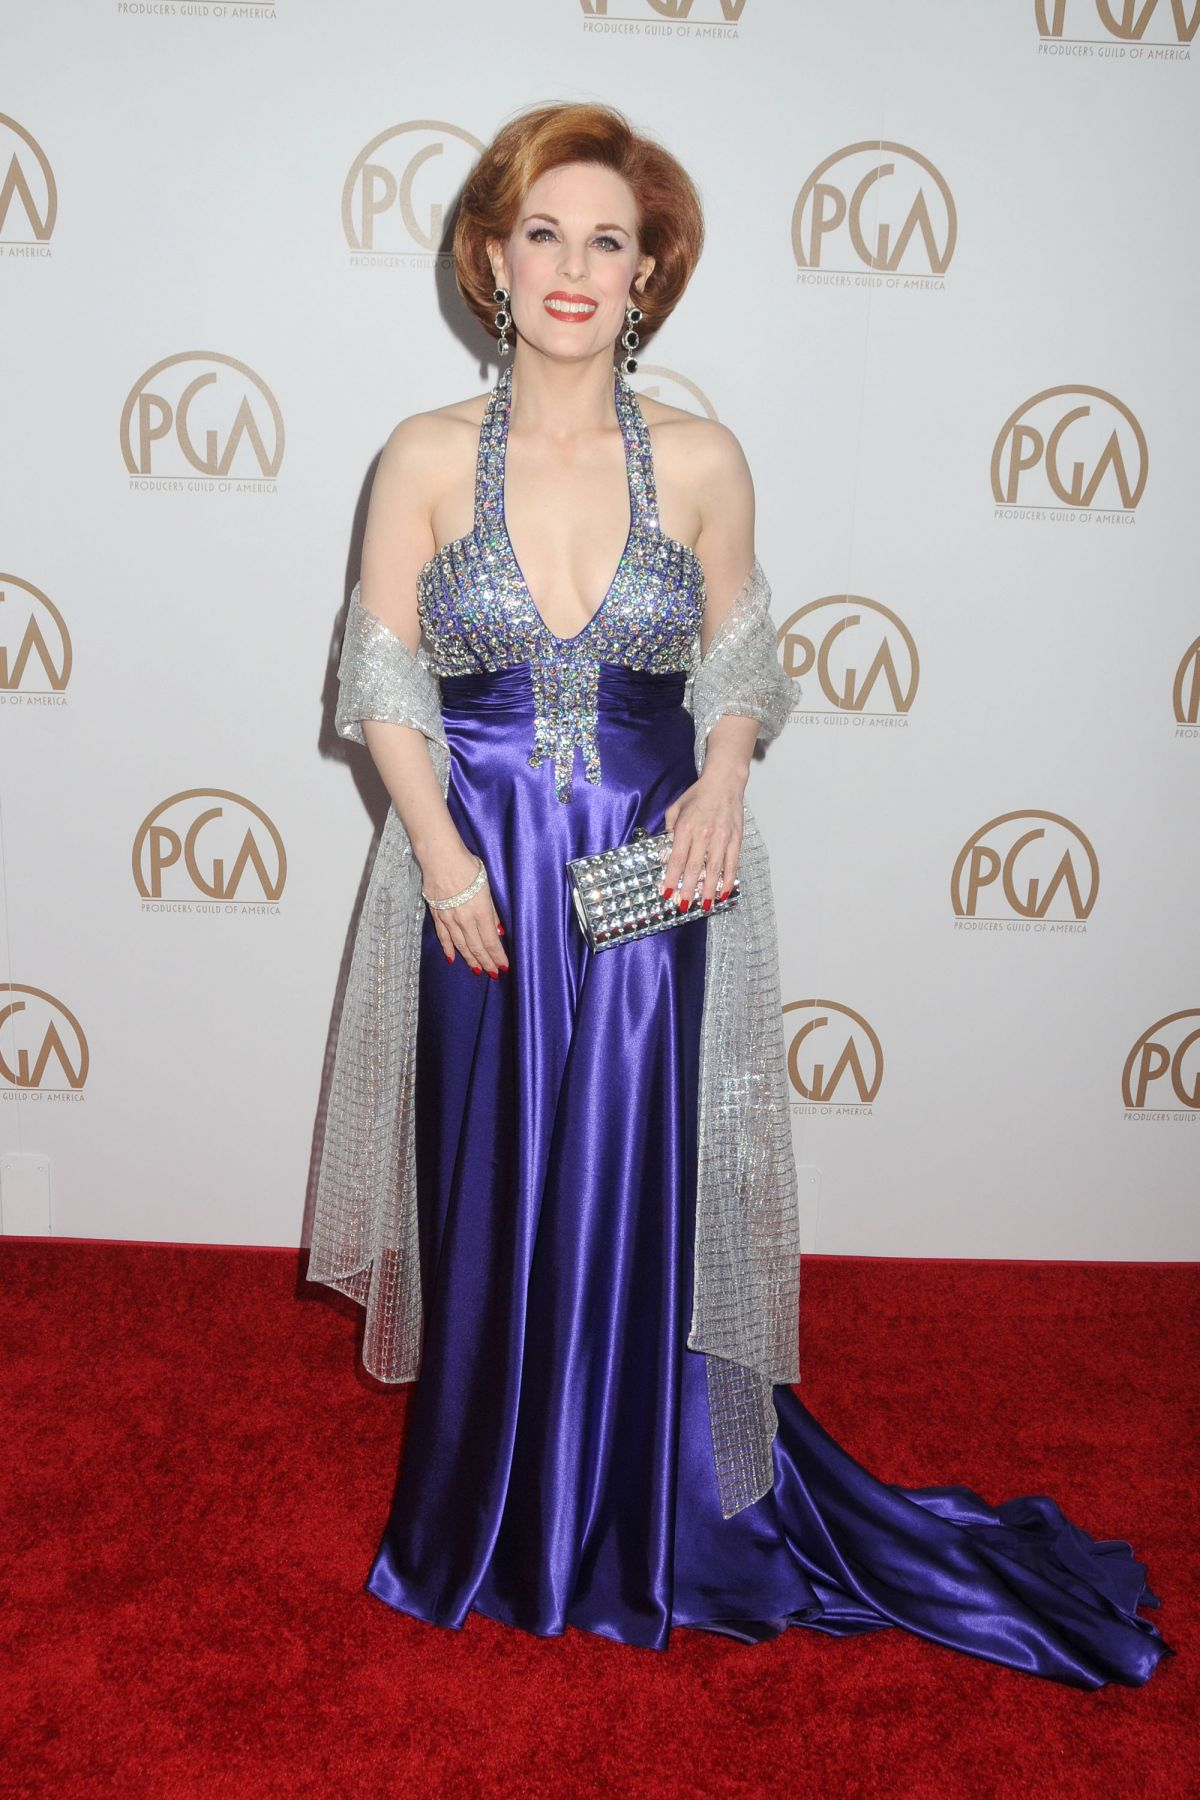 KAT KRAMER at 27th Annual Producers Guild Awards in Los Angeles 01/23/2016